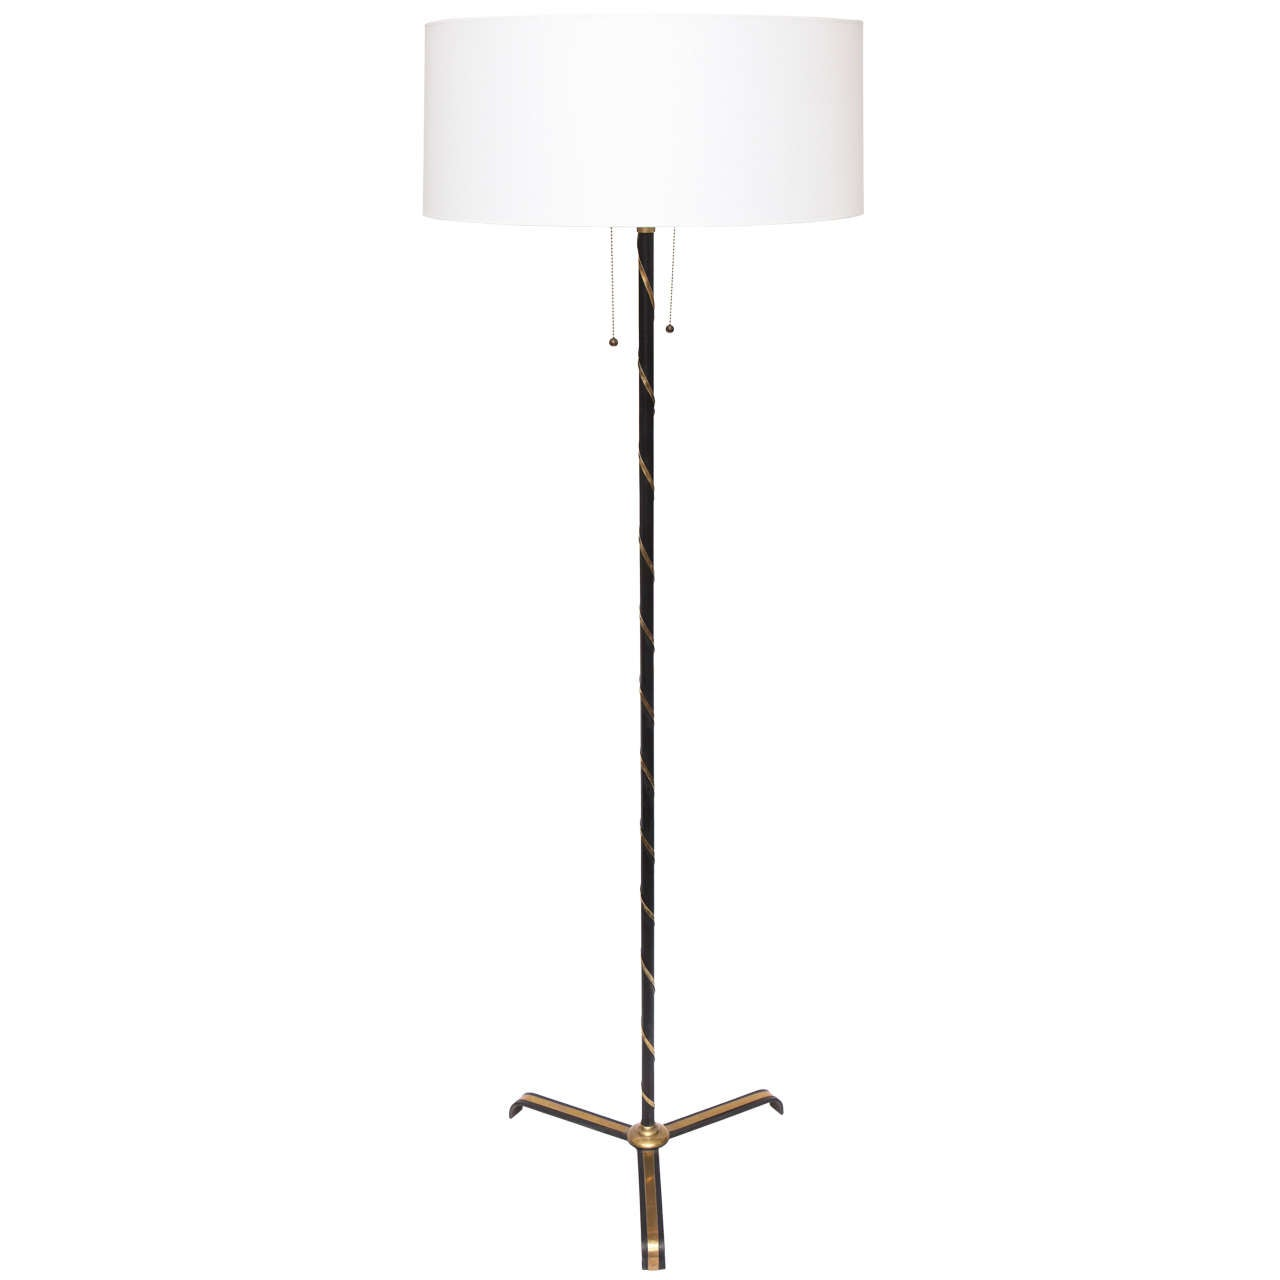 1940s French Art Moderne Floor Lamp For Sale